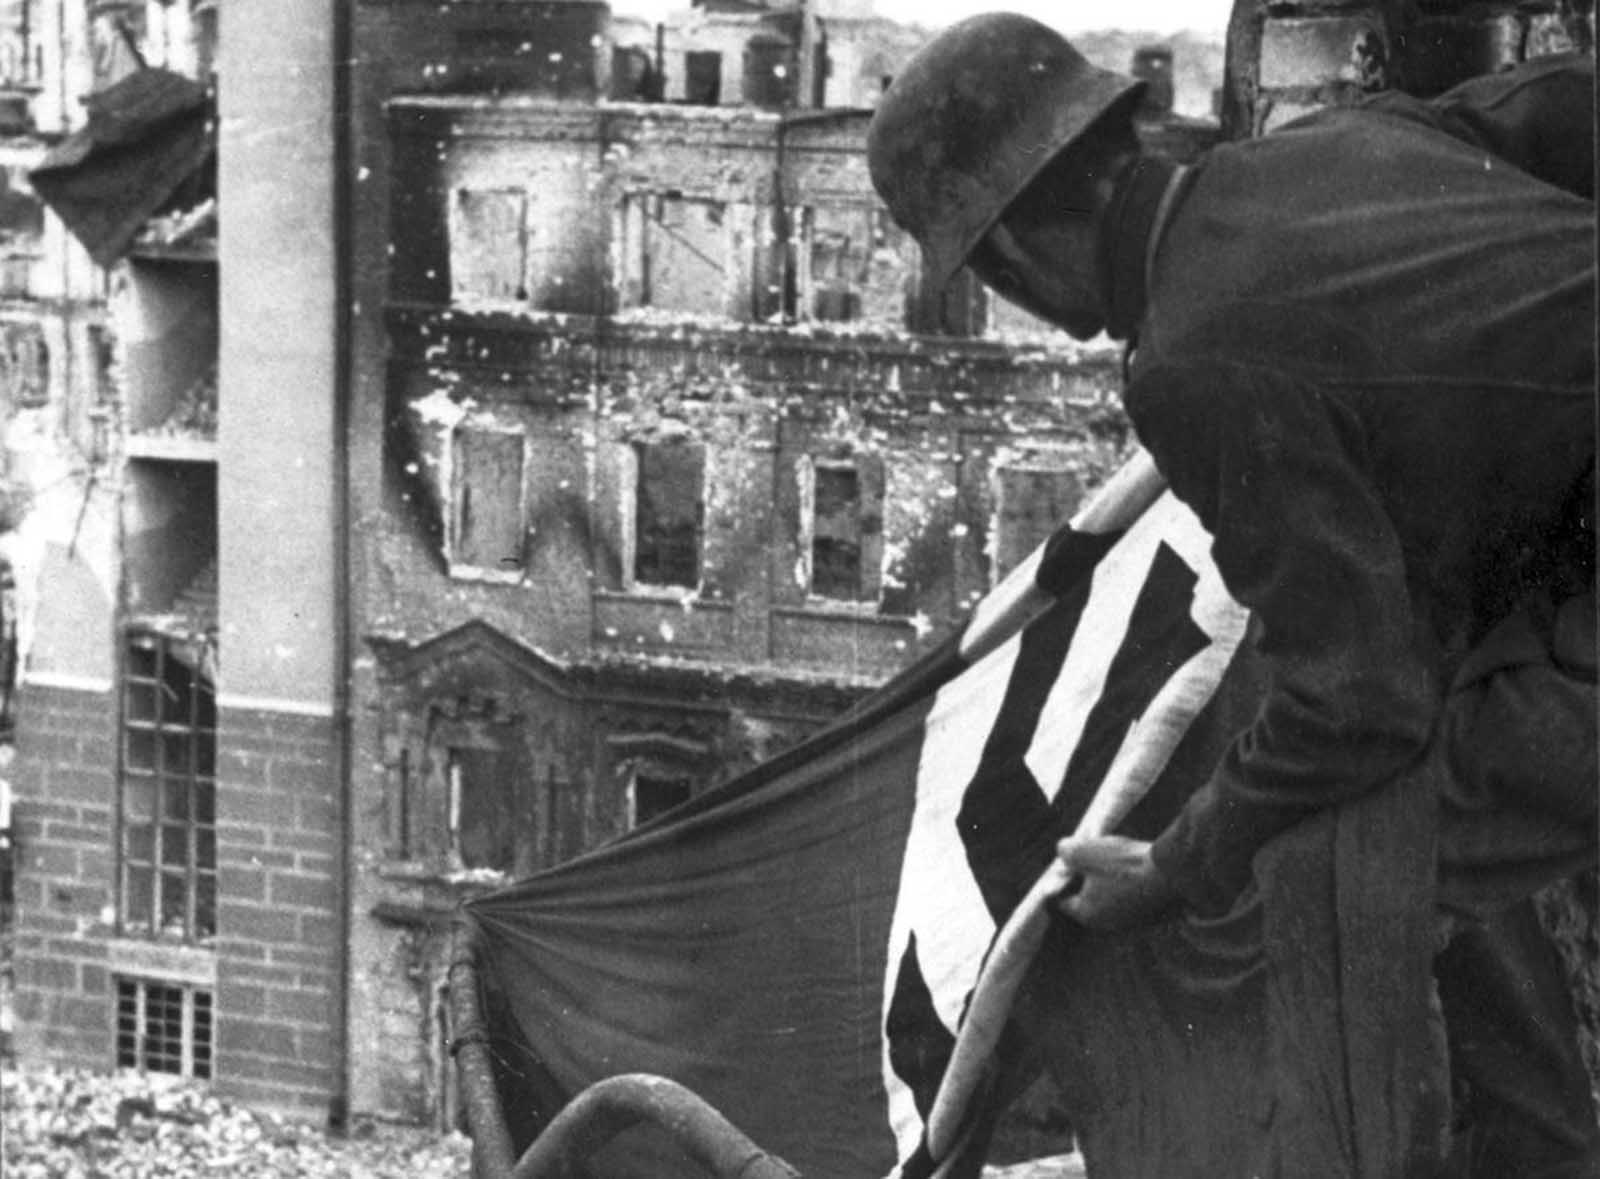 Sometime in the Autumn 1942, a German soldier hangs a Nazi flag from a building in downtown Stalingrad.